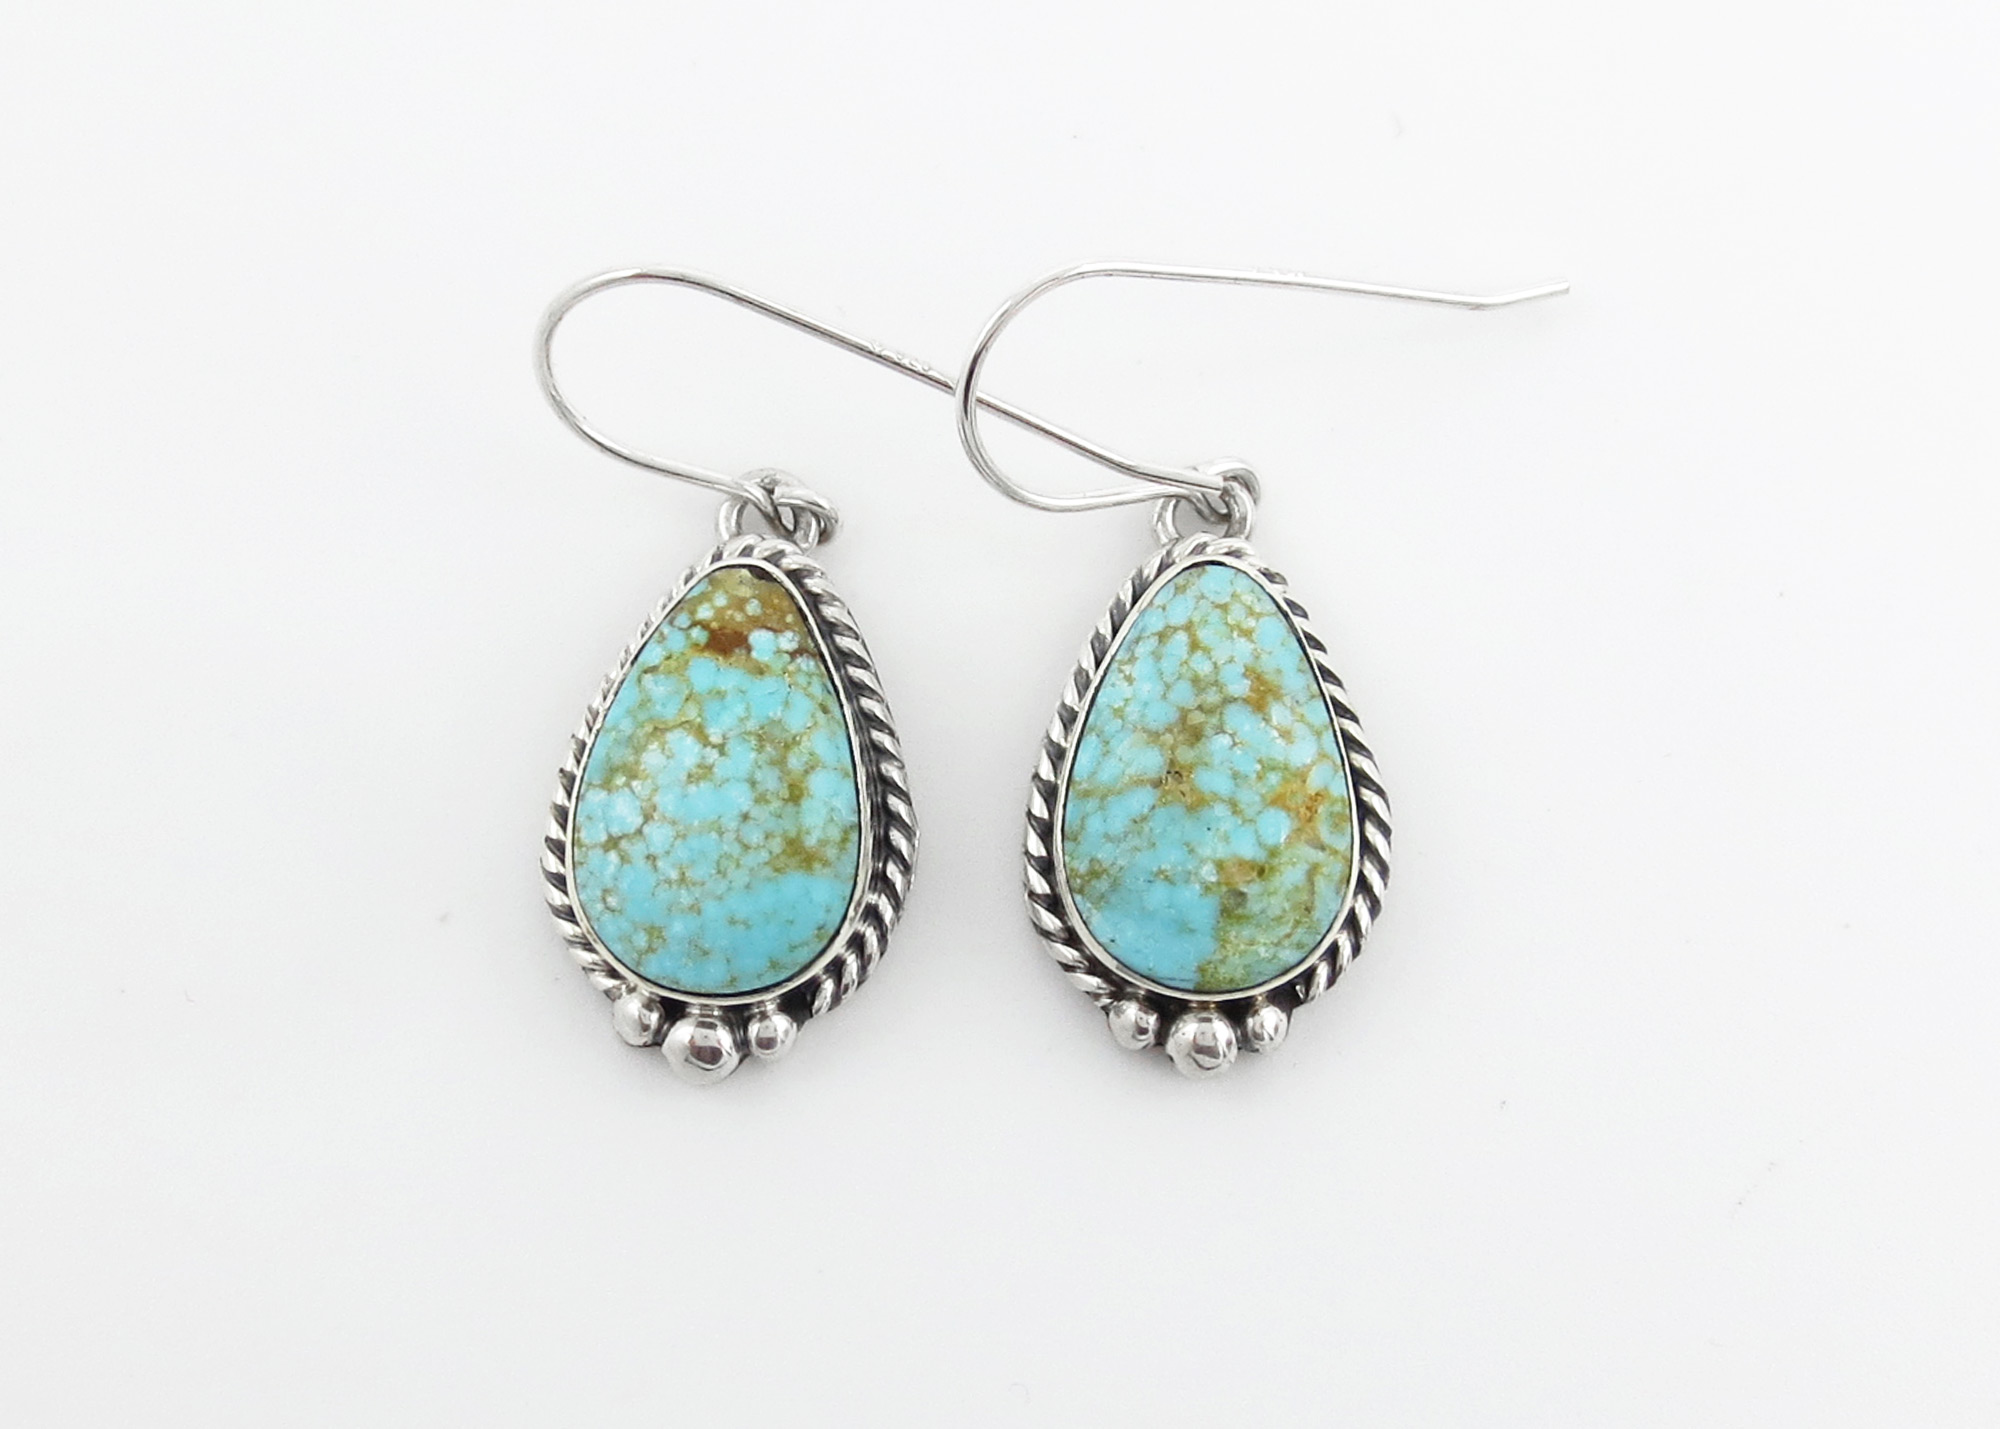 Turquoise & Sterling Silver Earrings Native American Jewelry - 3962sn